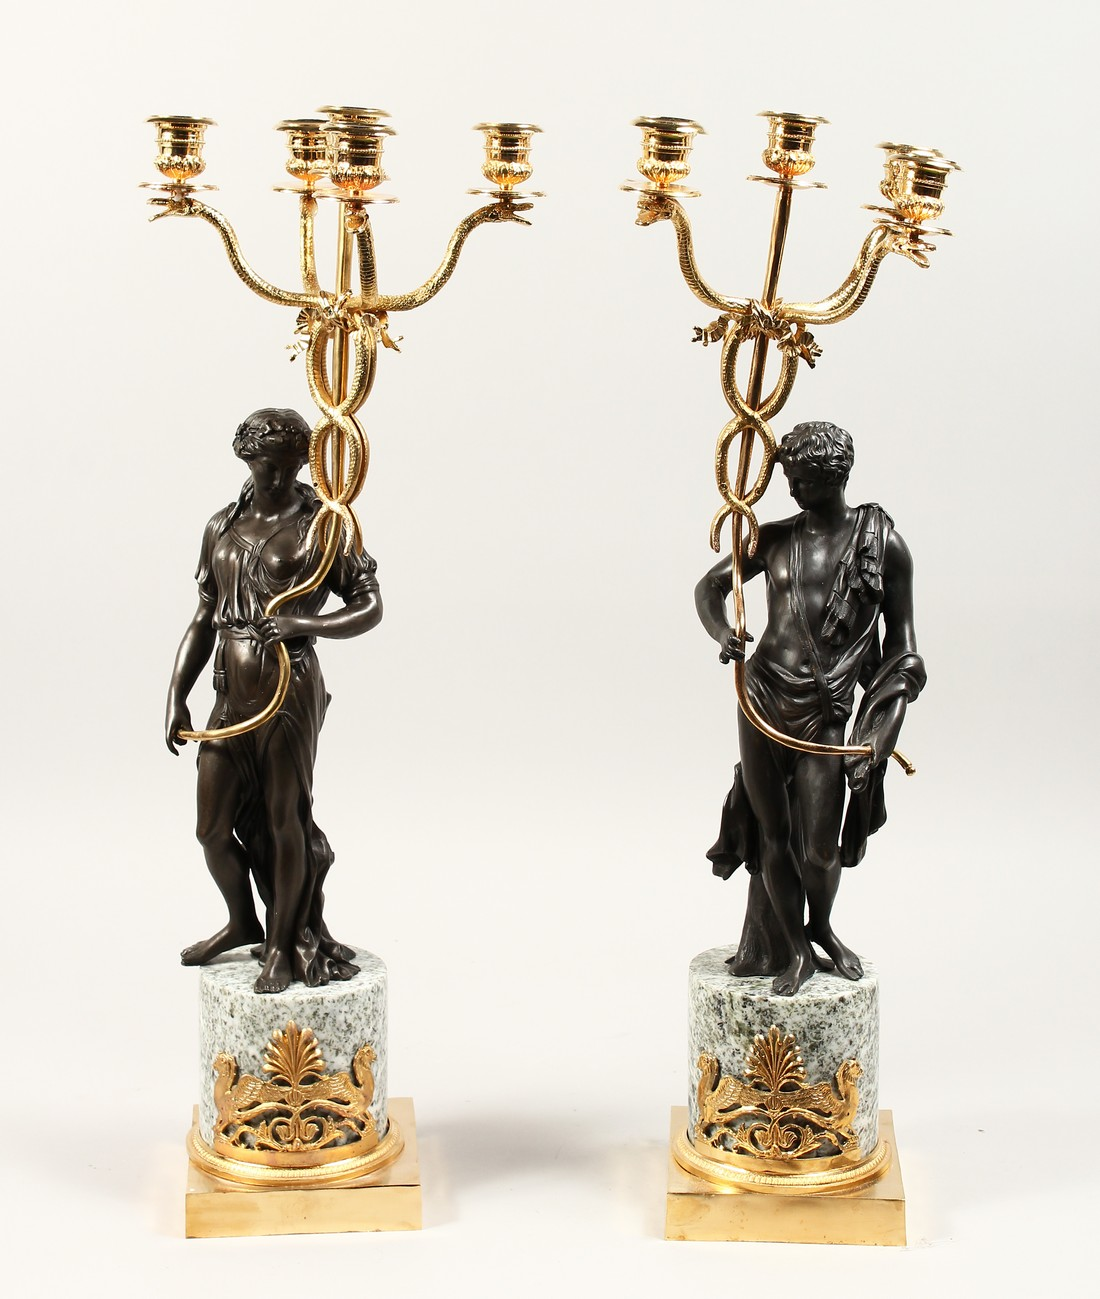 A LARGE PAIR OF THOMAS HOPE DESIGN, ORMOLU AND BRONZE CLASSICAL CANDLESTICKS with a pair of